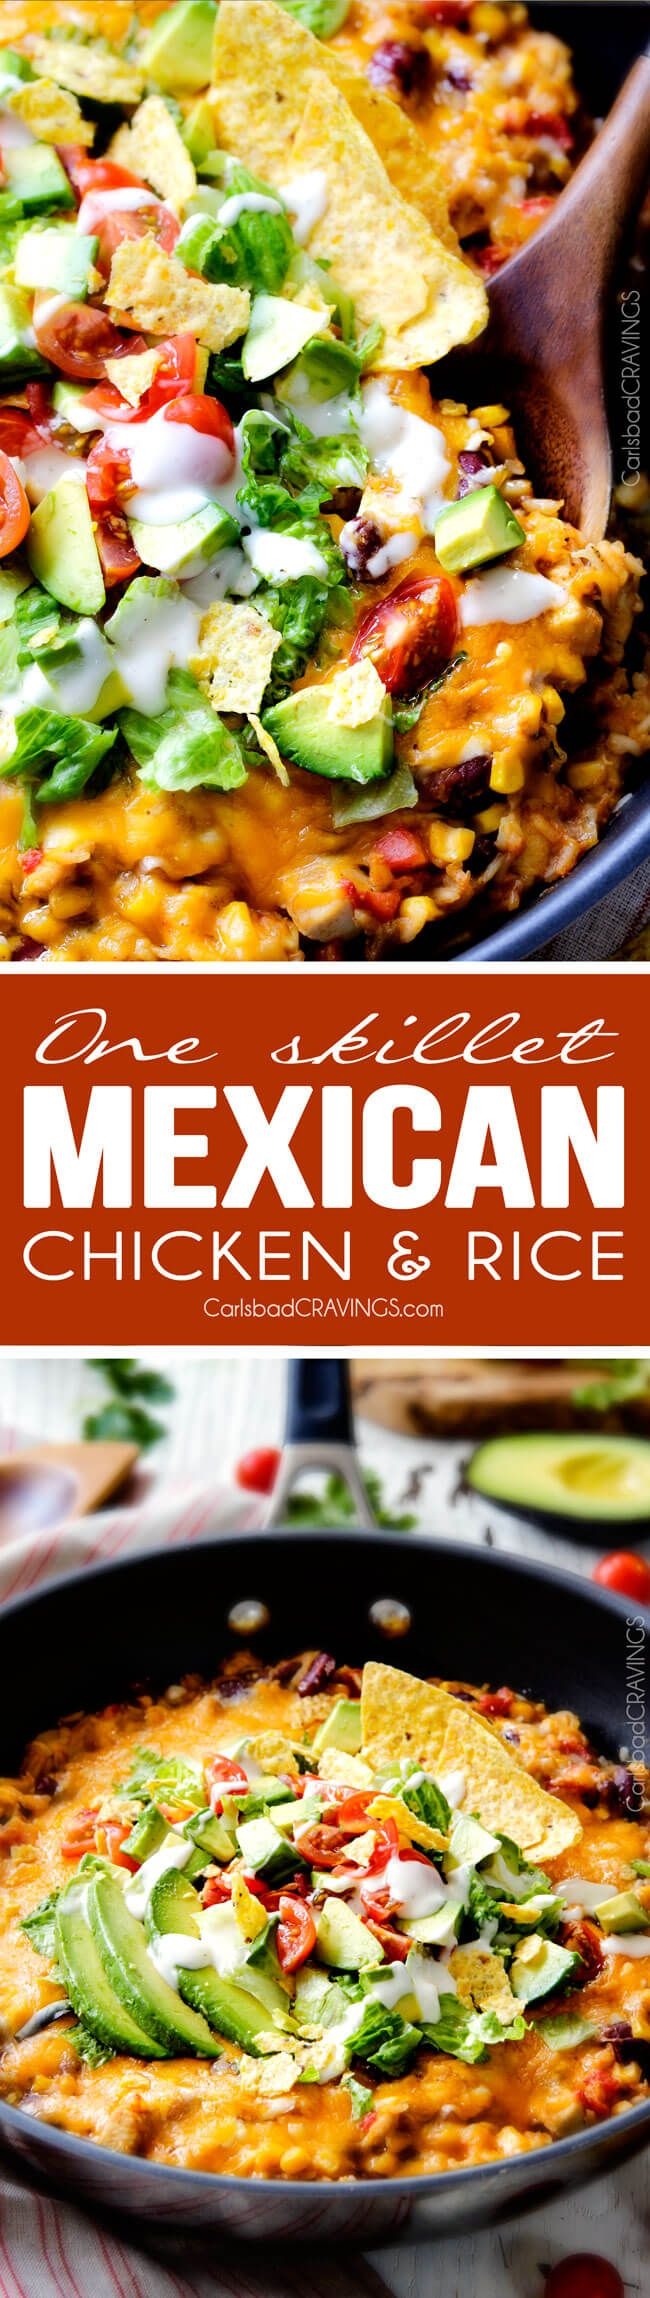 Creamy, Cheesy One Skillet Mexican Chicken and Rice on your table in 30 minutes…